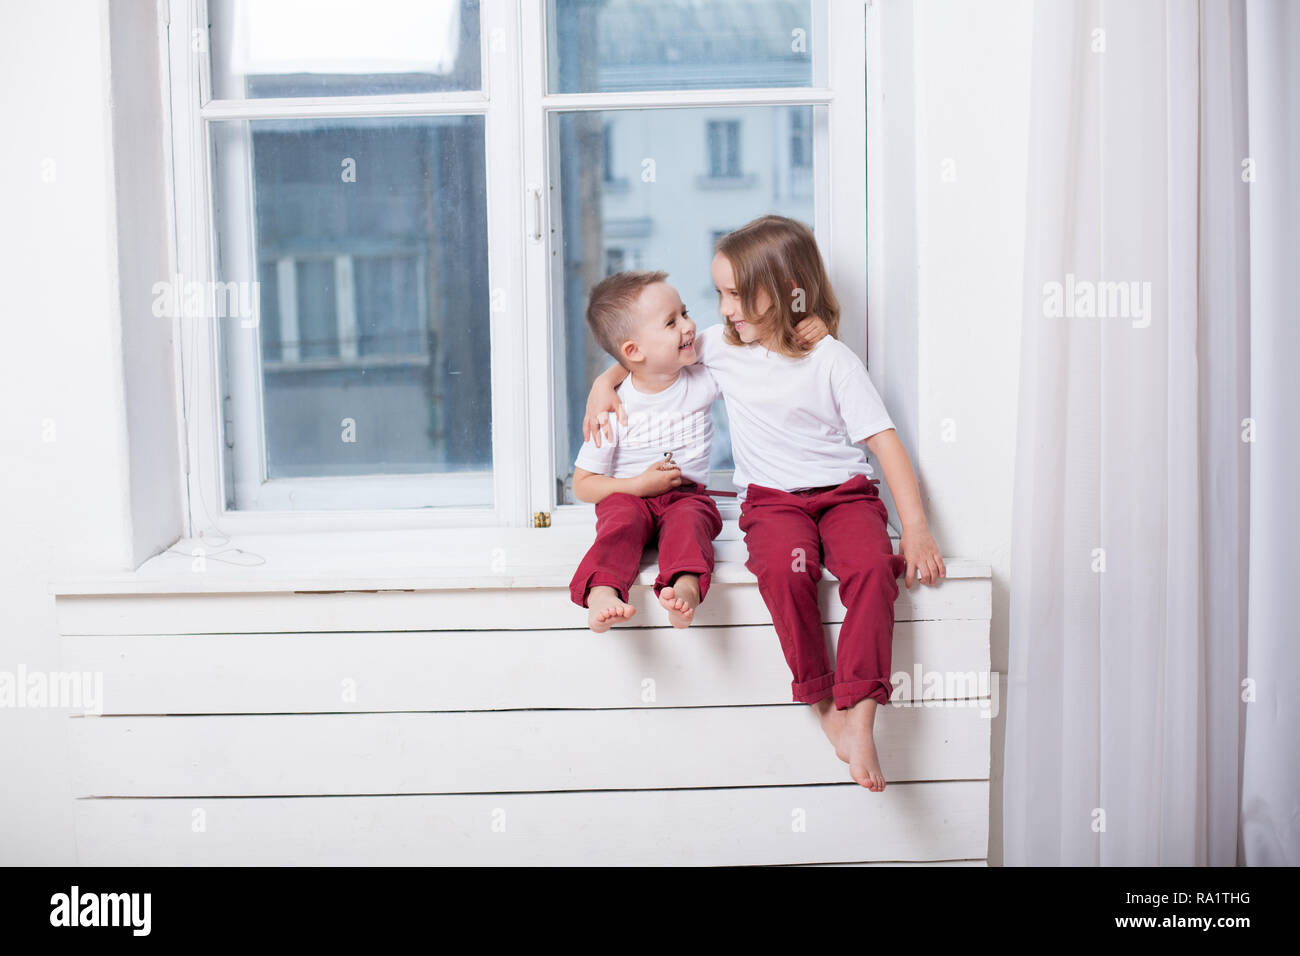 boy and girl are brother and sister sit on the windowsill at the window - Stock Image